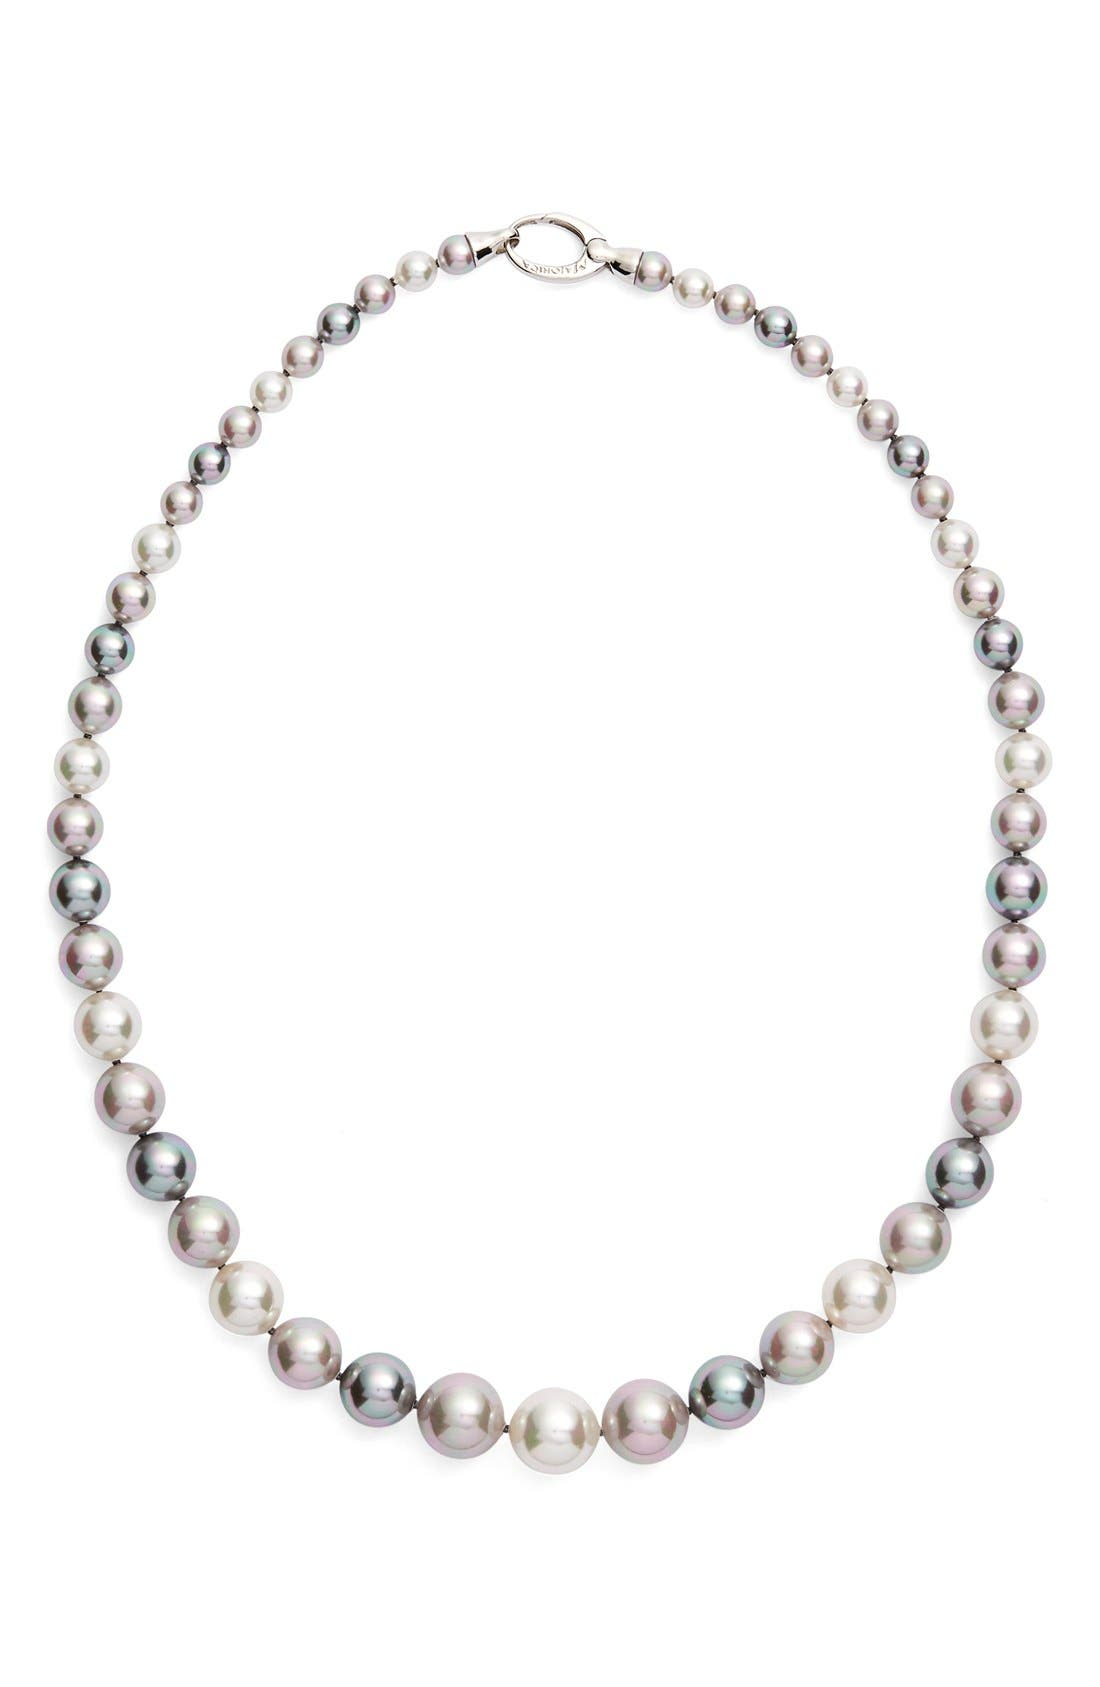 Graduated Round Simulated Pearl Necklace,                         Main,                         color, 020